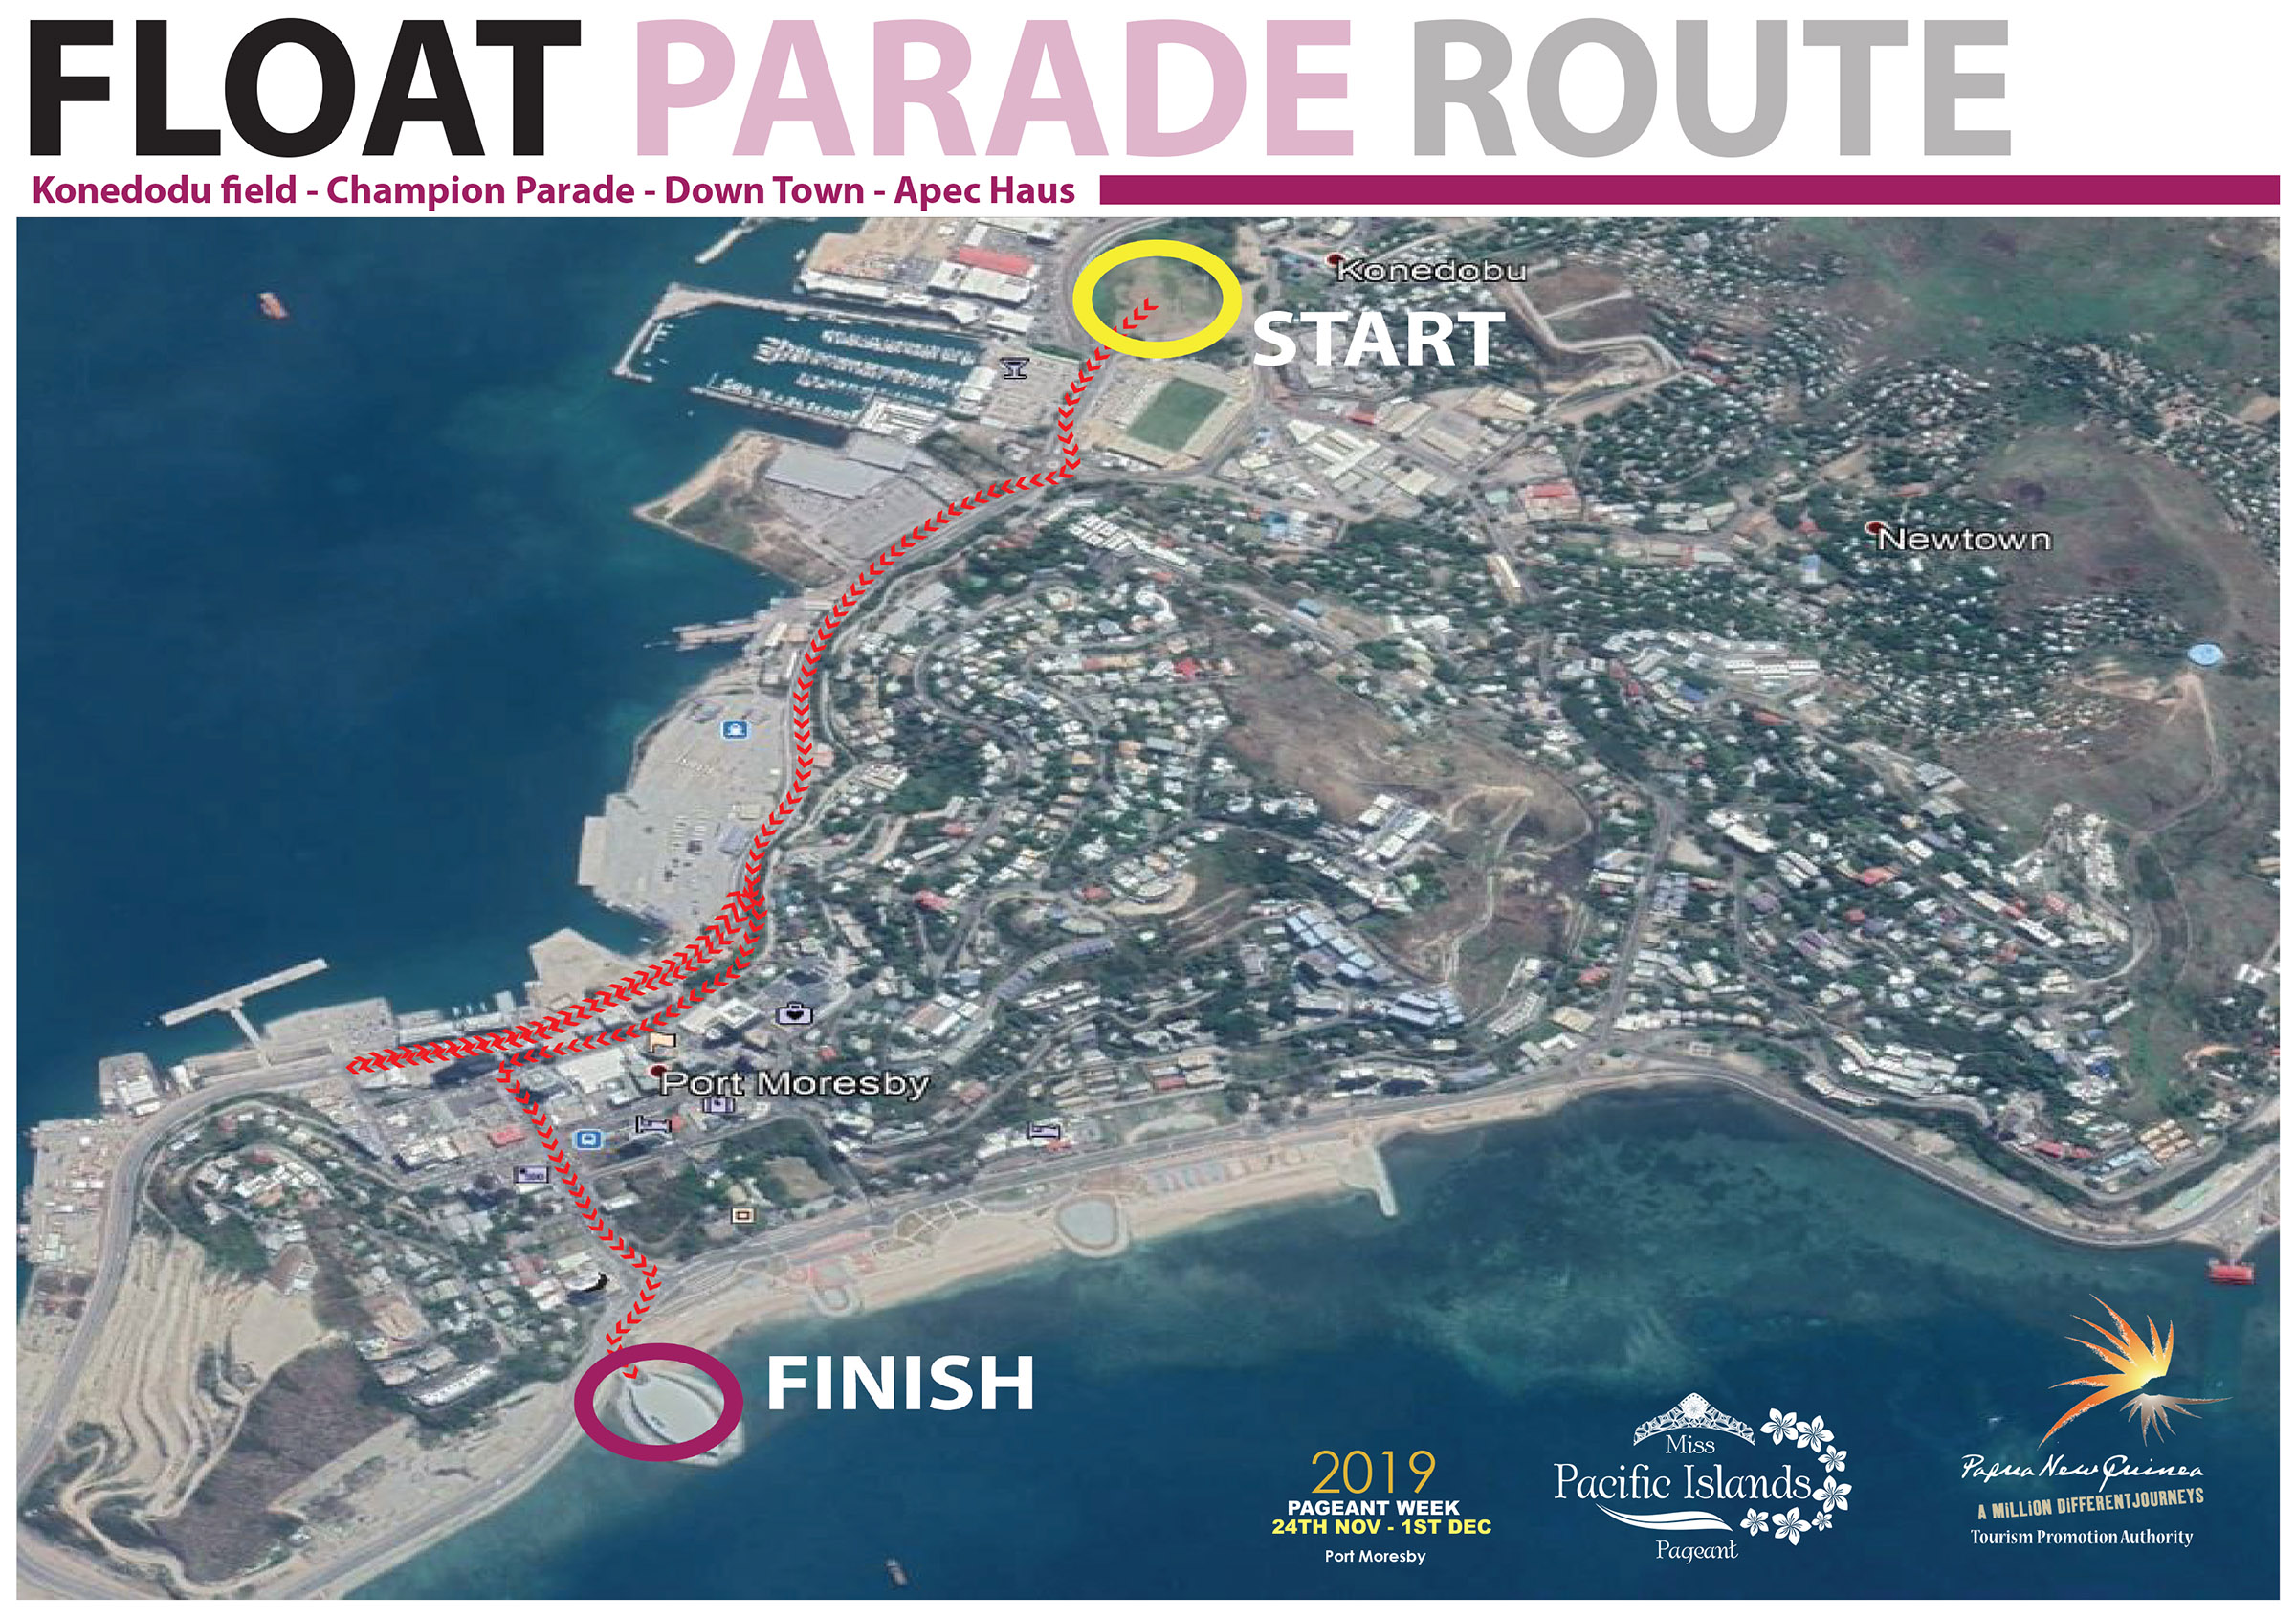 2019 Miss Pacific Islands Pageant Float Parade Route